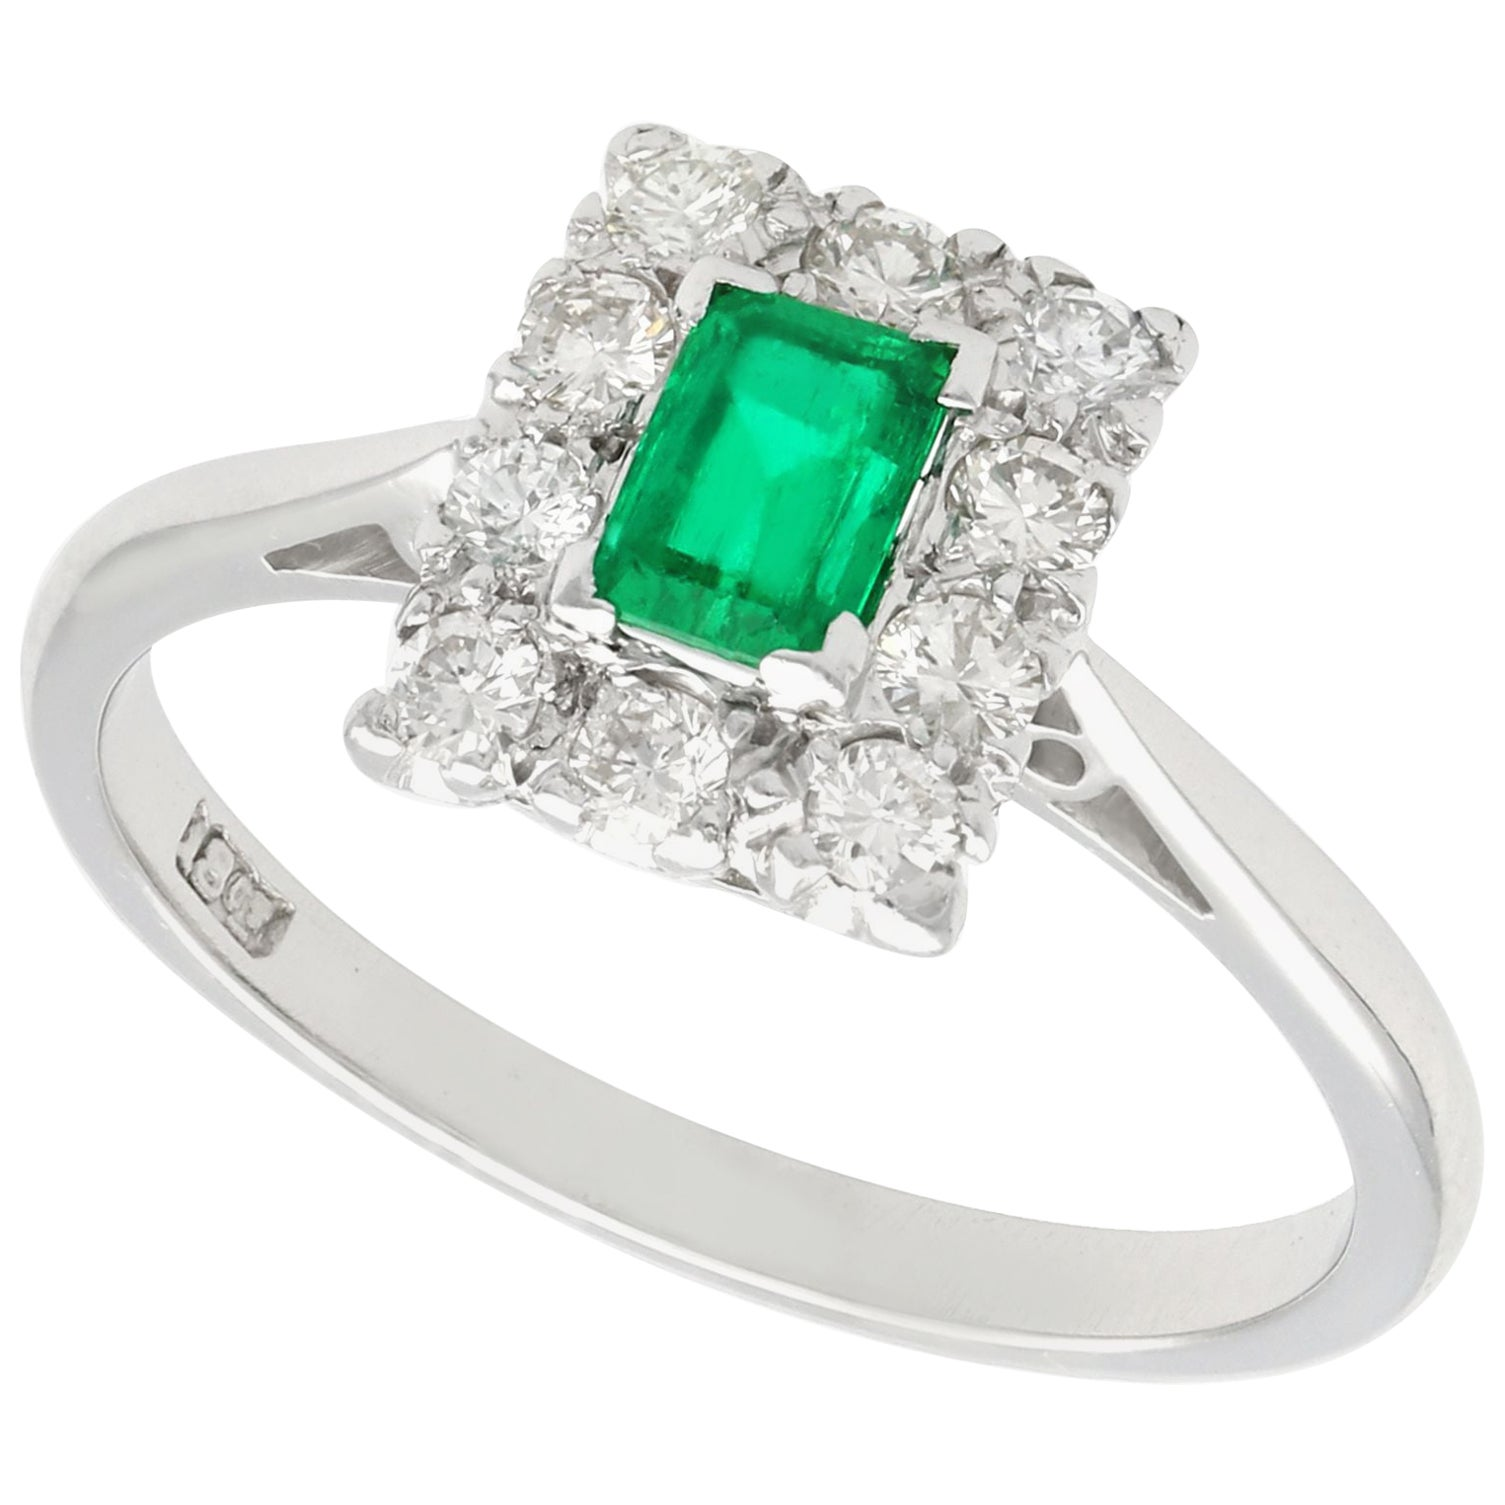 1940s Emerald Diamond White Gold Cocktail Ring